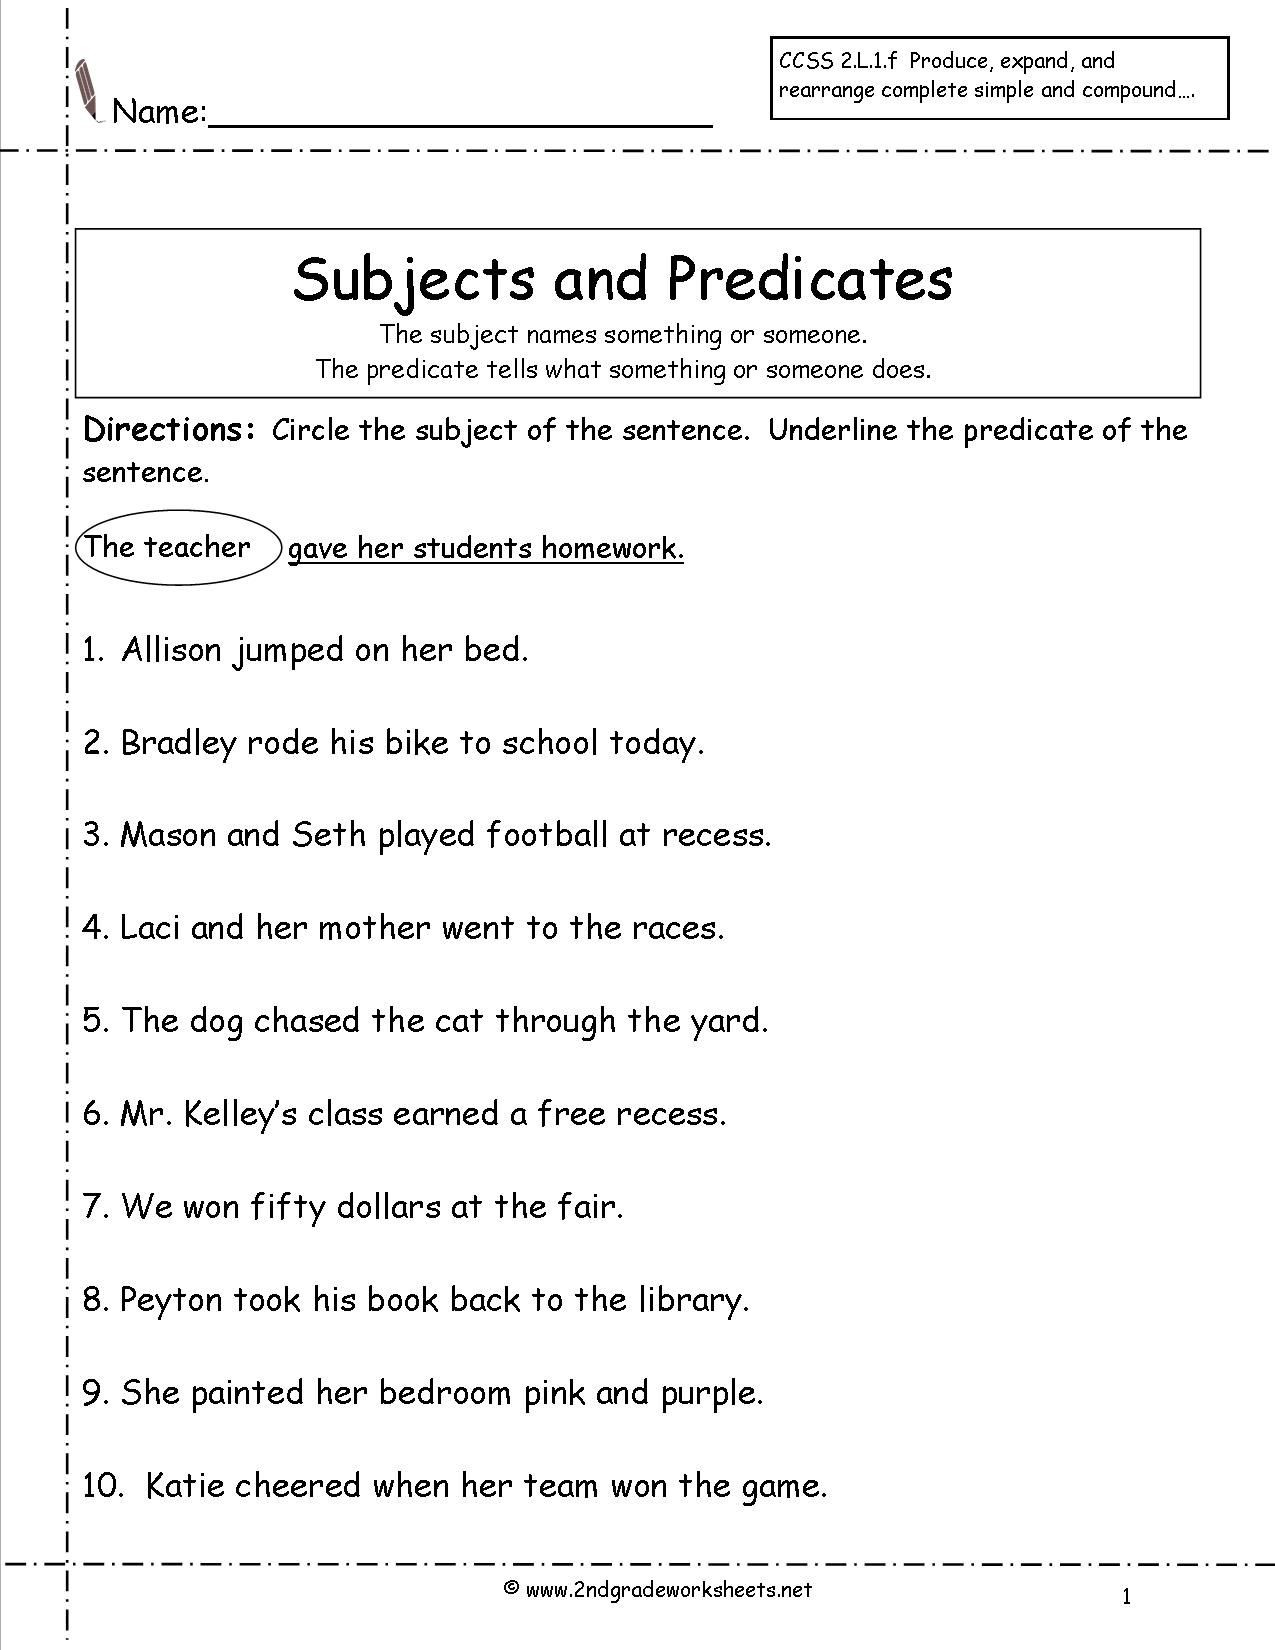 Topic Sentence Worksheet 2nd Grade Subject Predicate Worksheets 2nd Grade Google Search